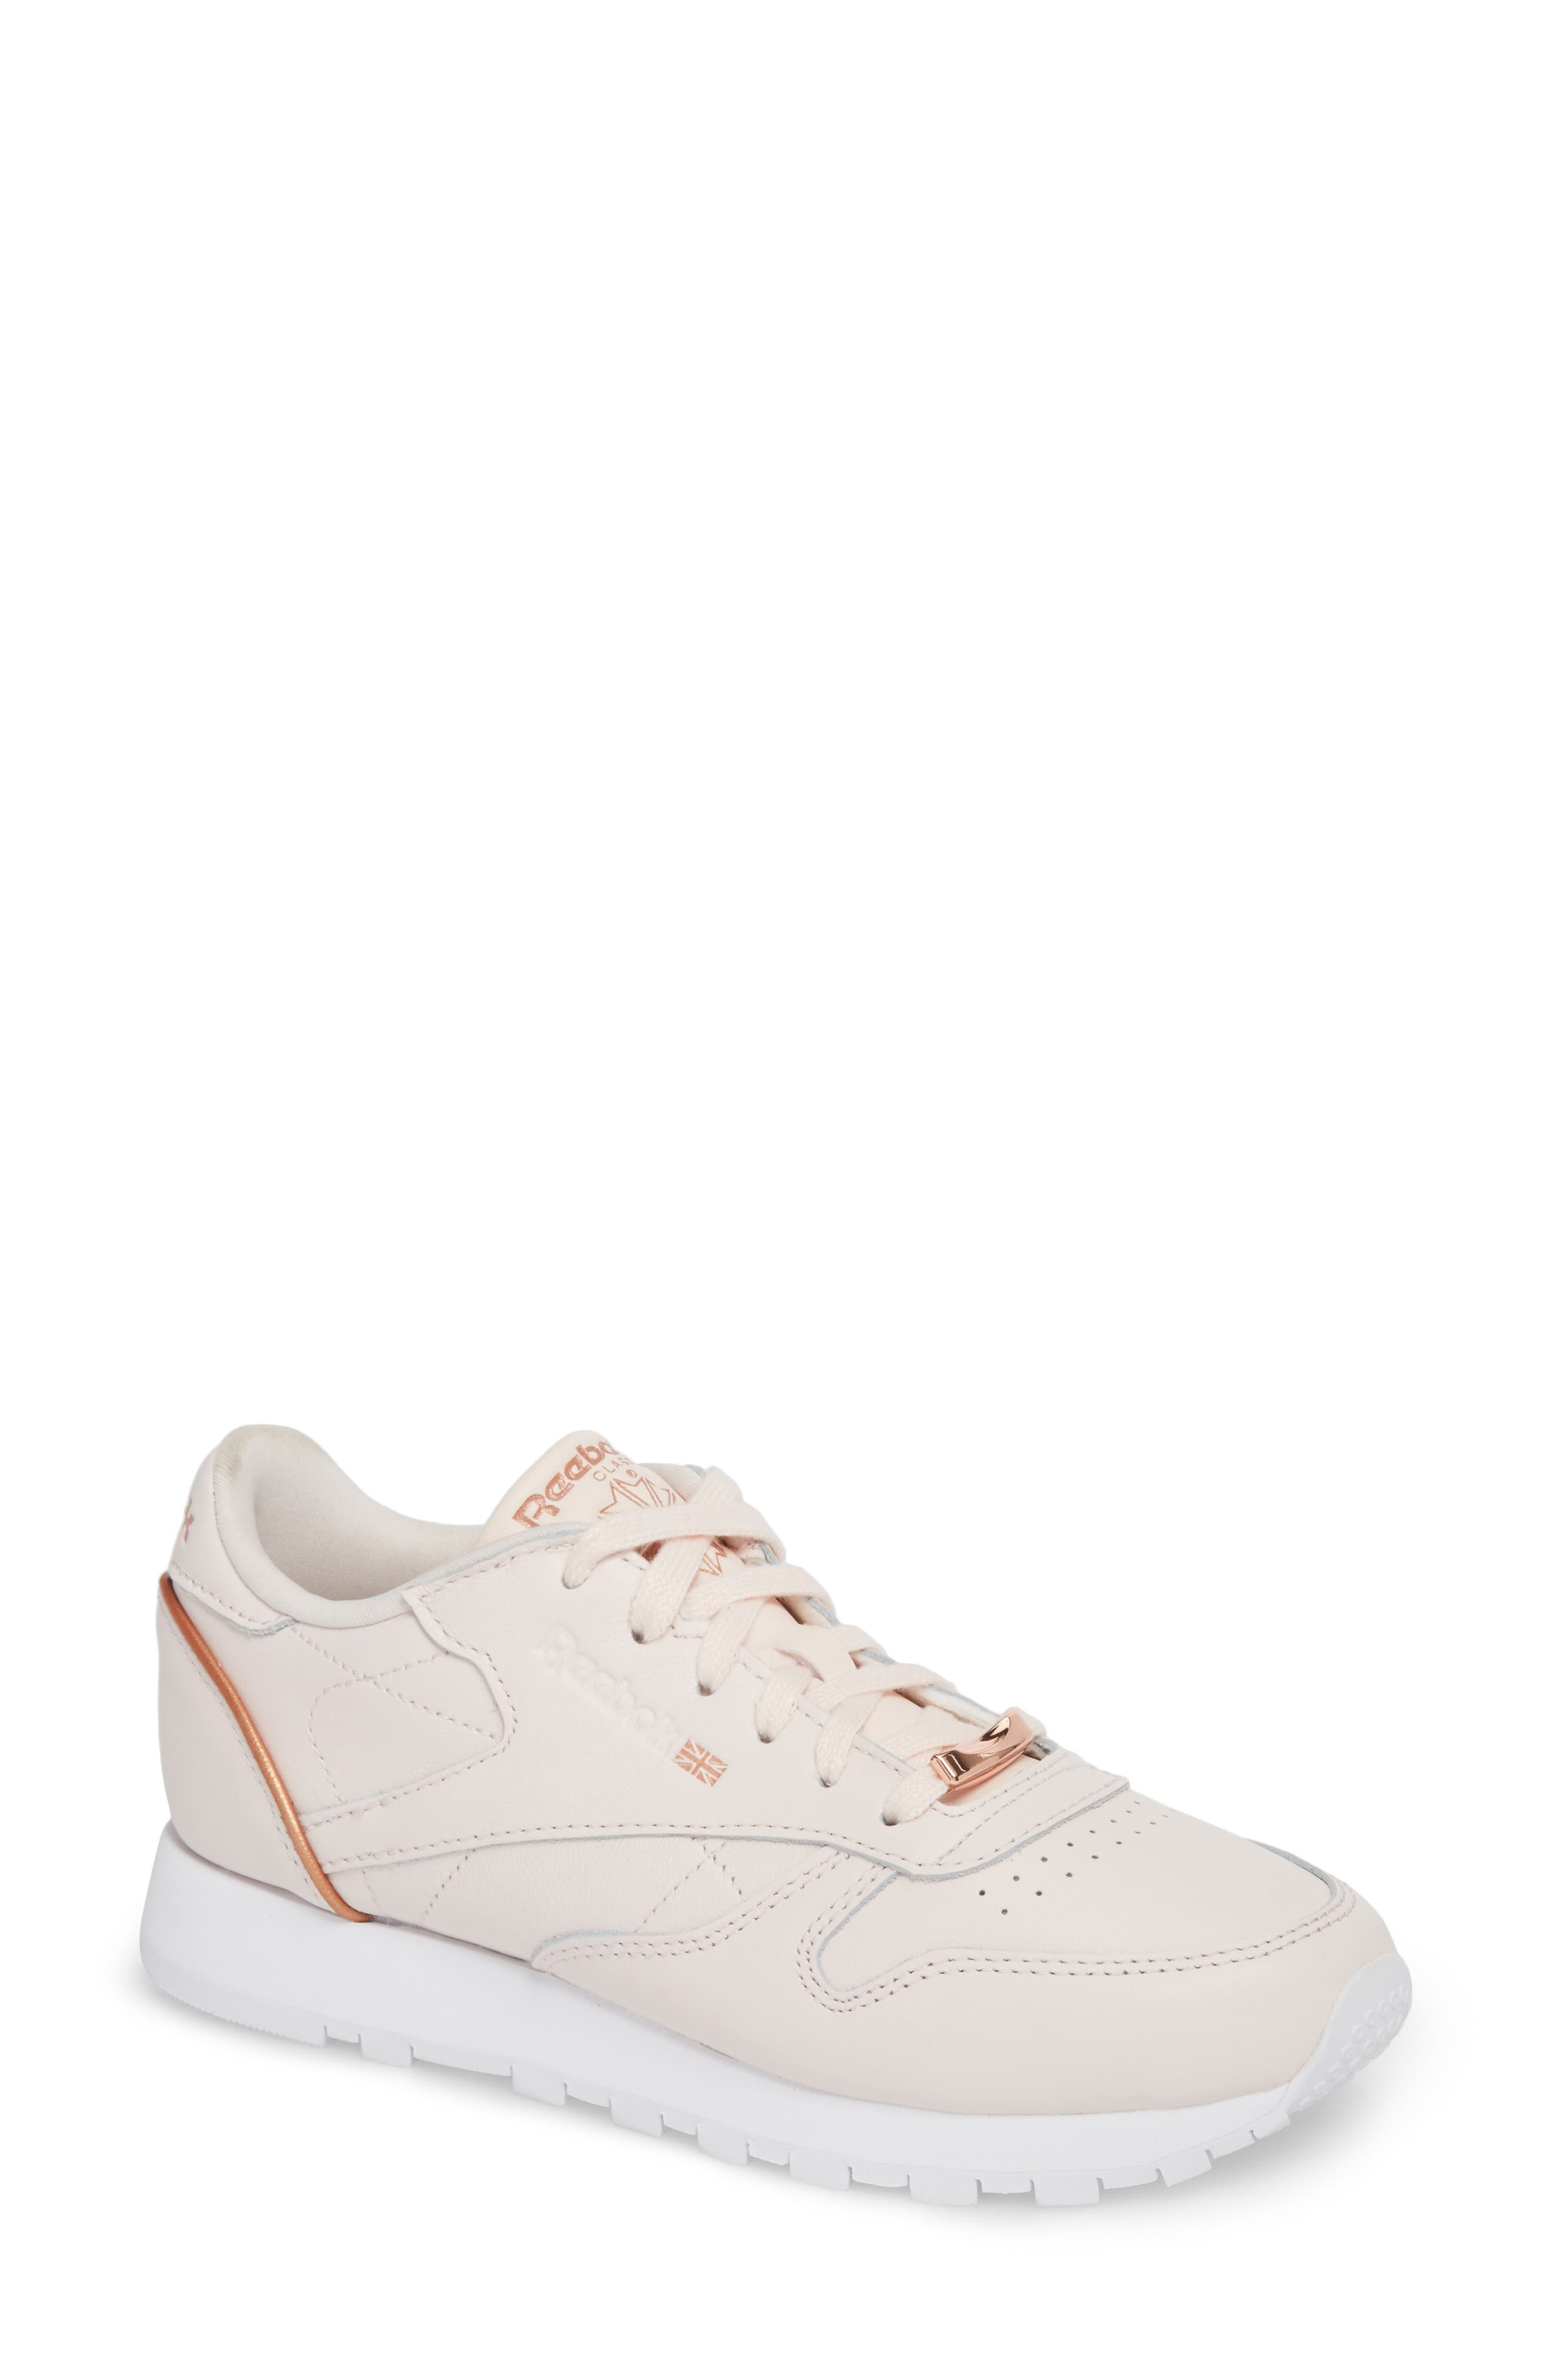 Classic Leather HW Sneaker,                         Main,                         color, Pale Pink/ White/ Rose Gold